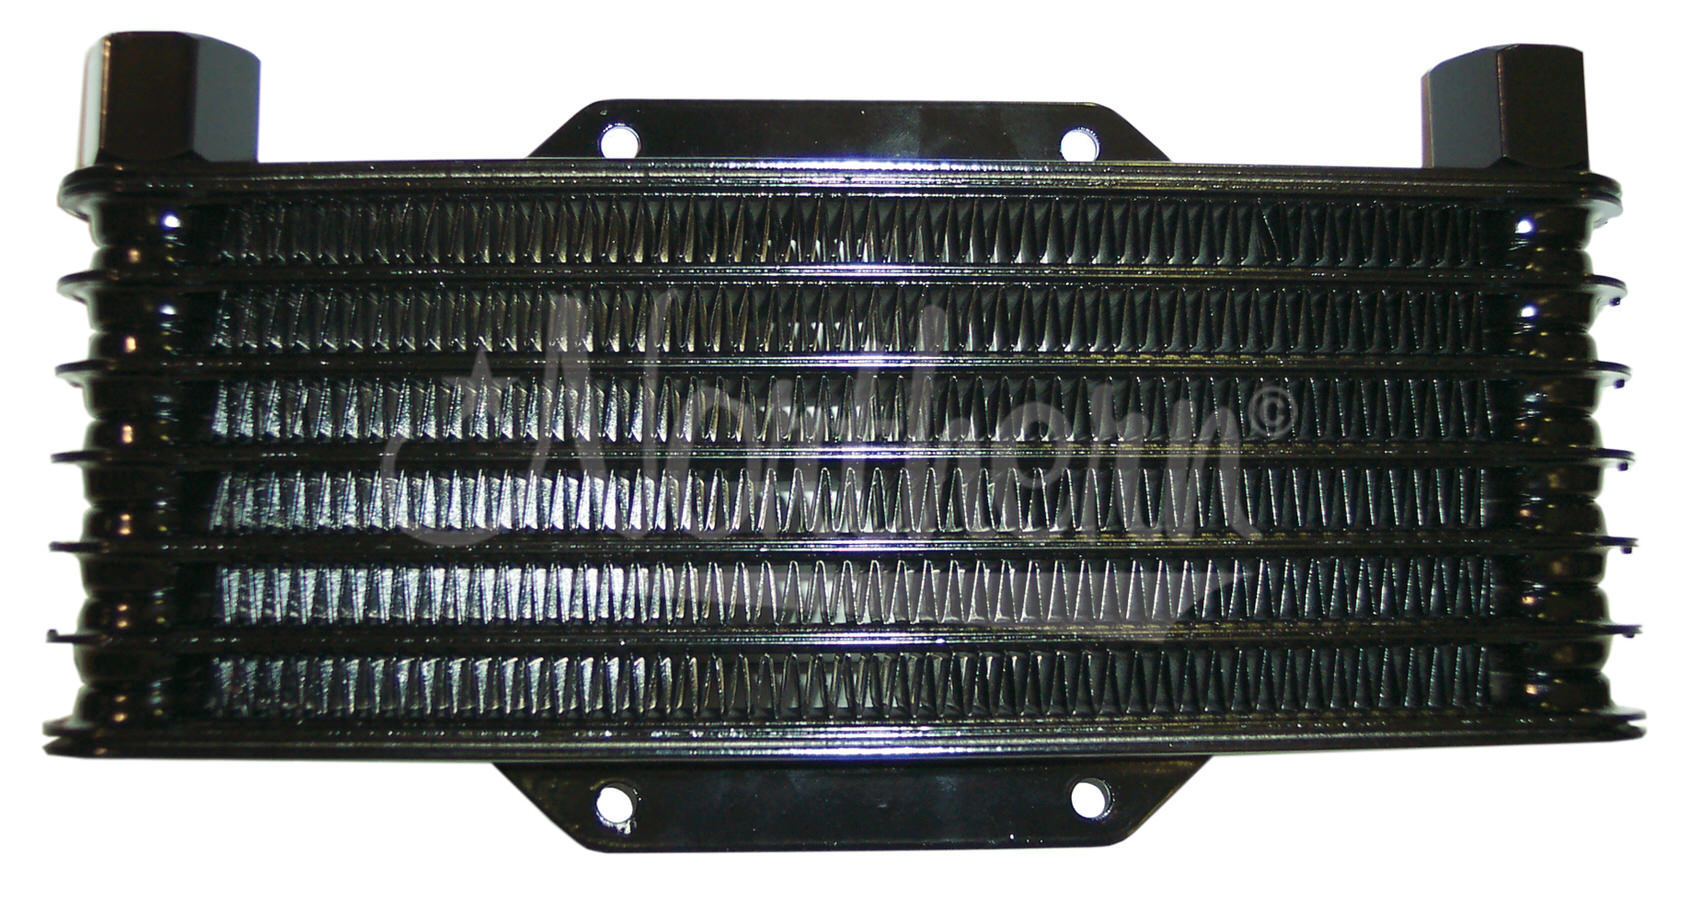 Northern Radiator Z18027 Fluid Cooler, High Efficiency, 7-1/2 x 4 x 1-1/4 in, 1/2 in NPT Inlet / Outlet, Plate and Fin, Hardware Included, Aluminum, Black, Universal, Kit